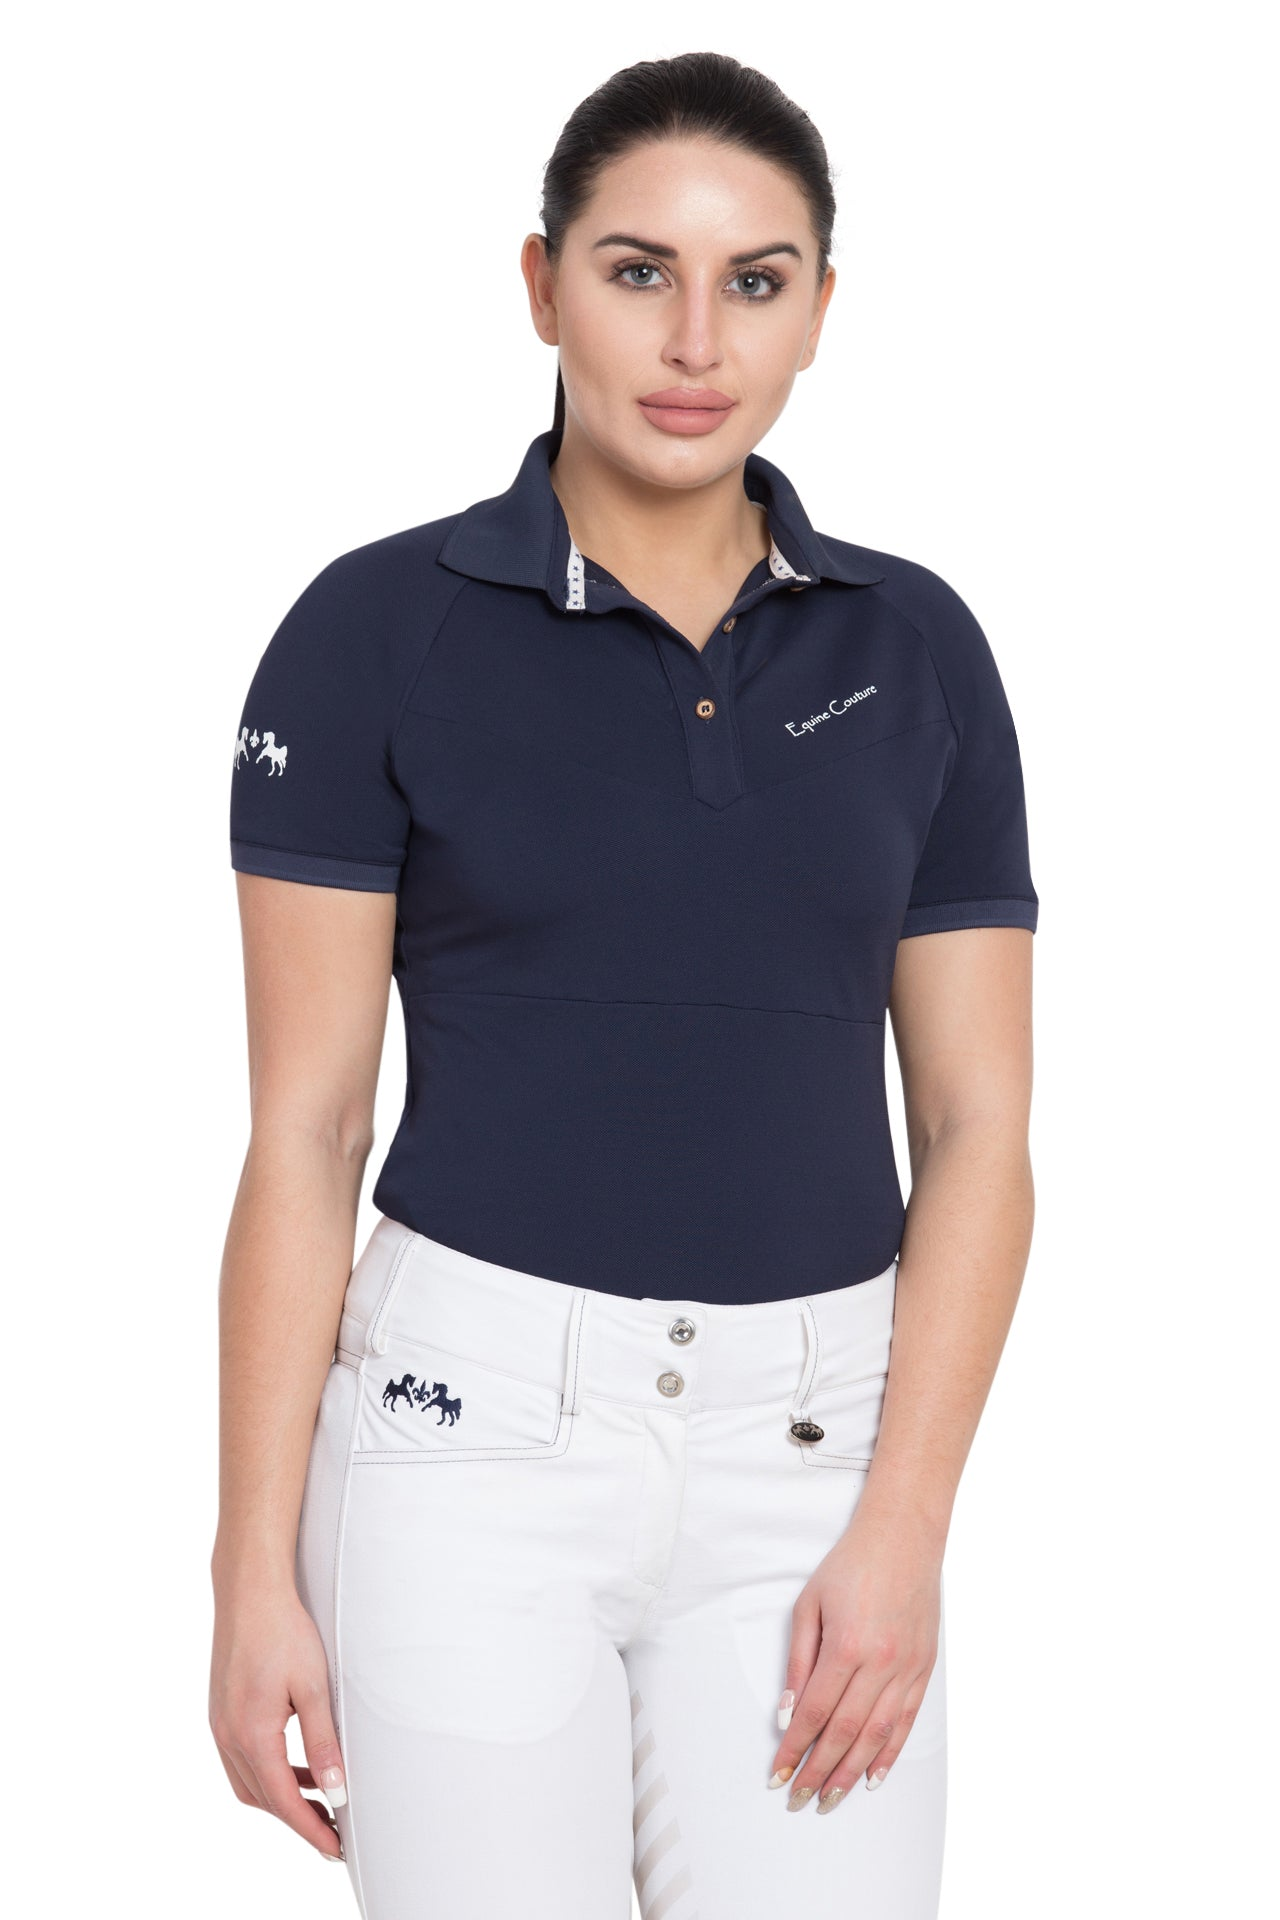 Ladies Performance Short Sleeve Polo Sport Shirt